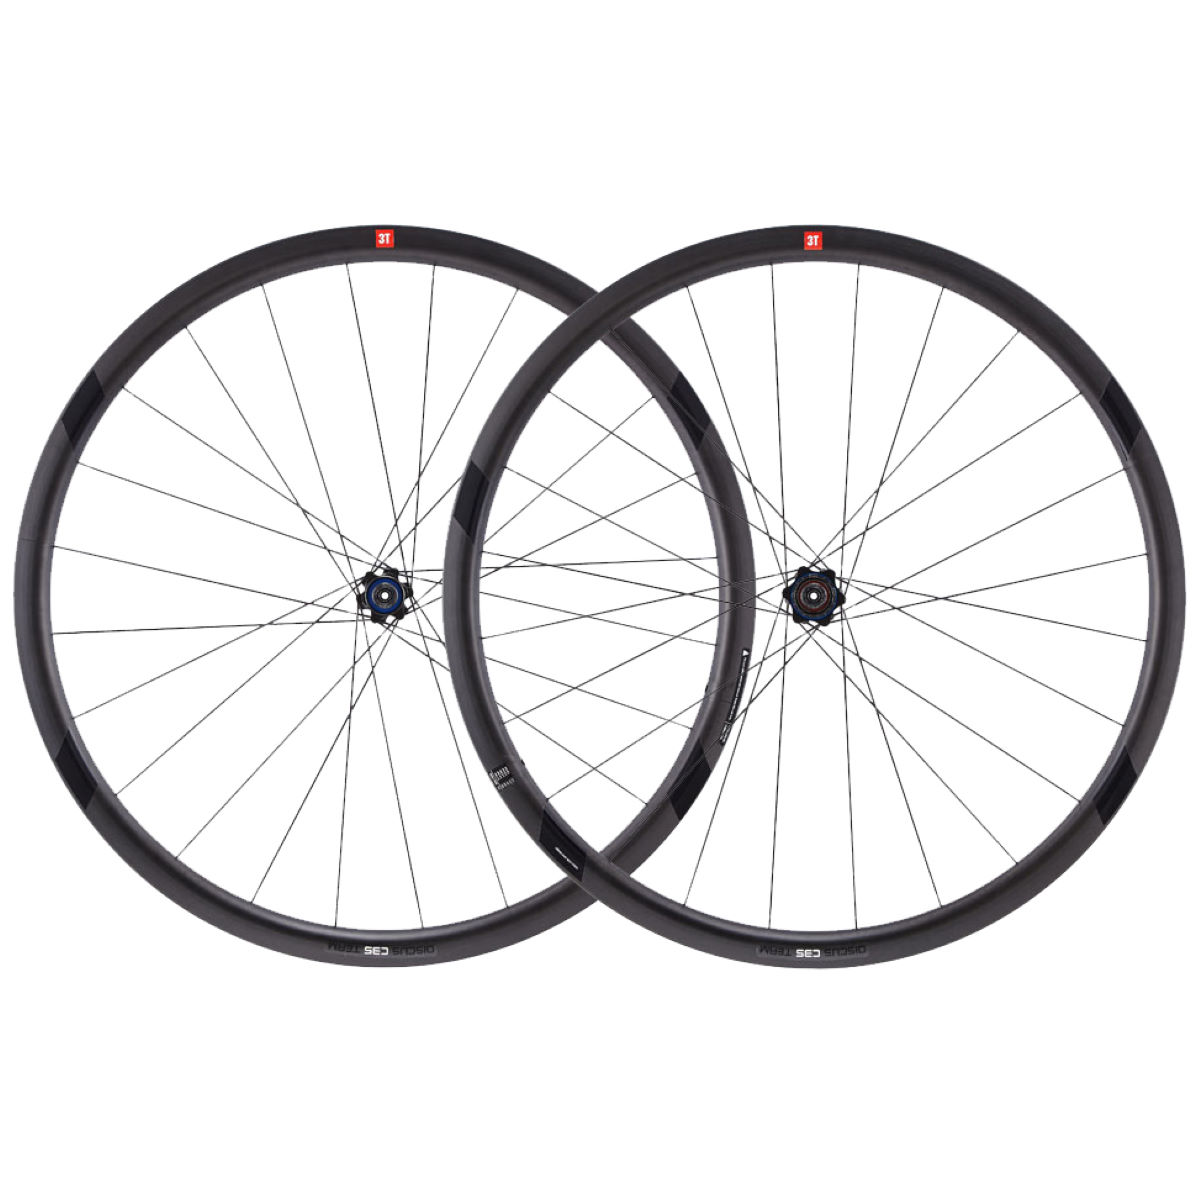 3T 3T Discus C35 Team Stealth Wheelset (Shimano)   Wheel Sets